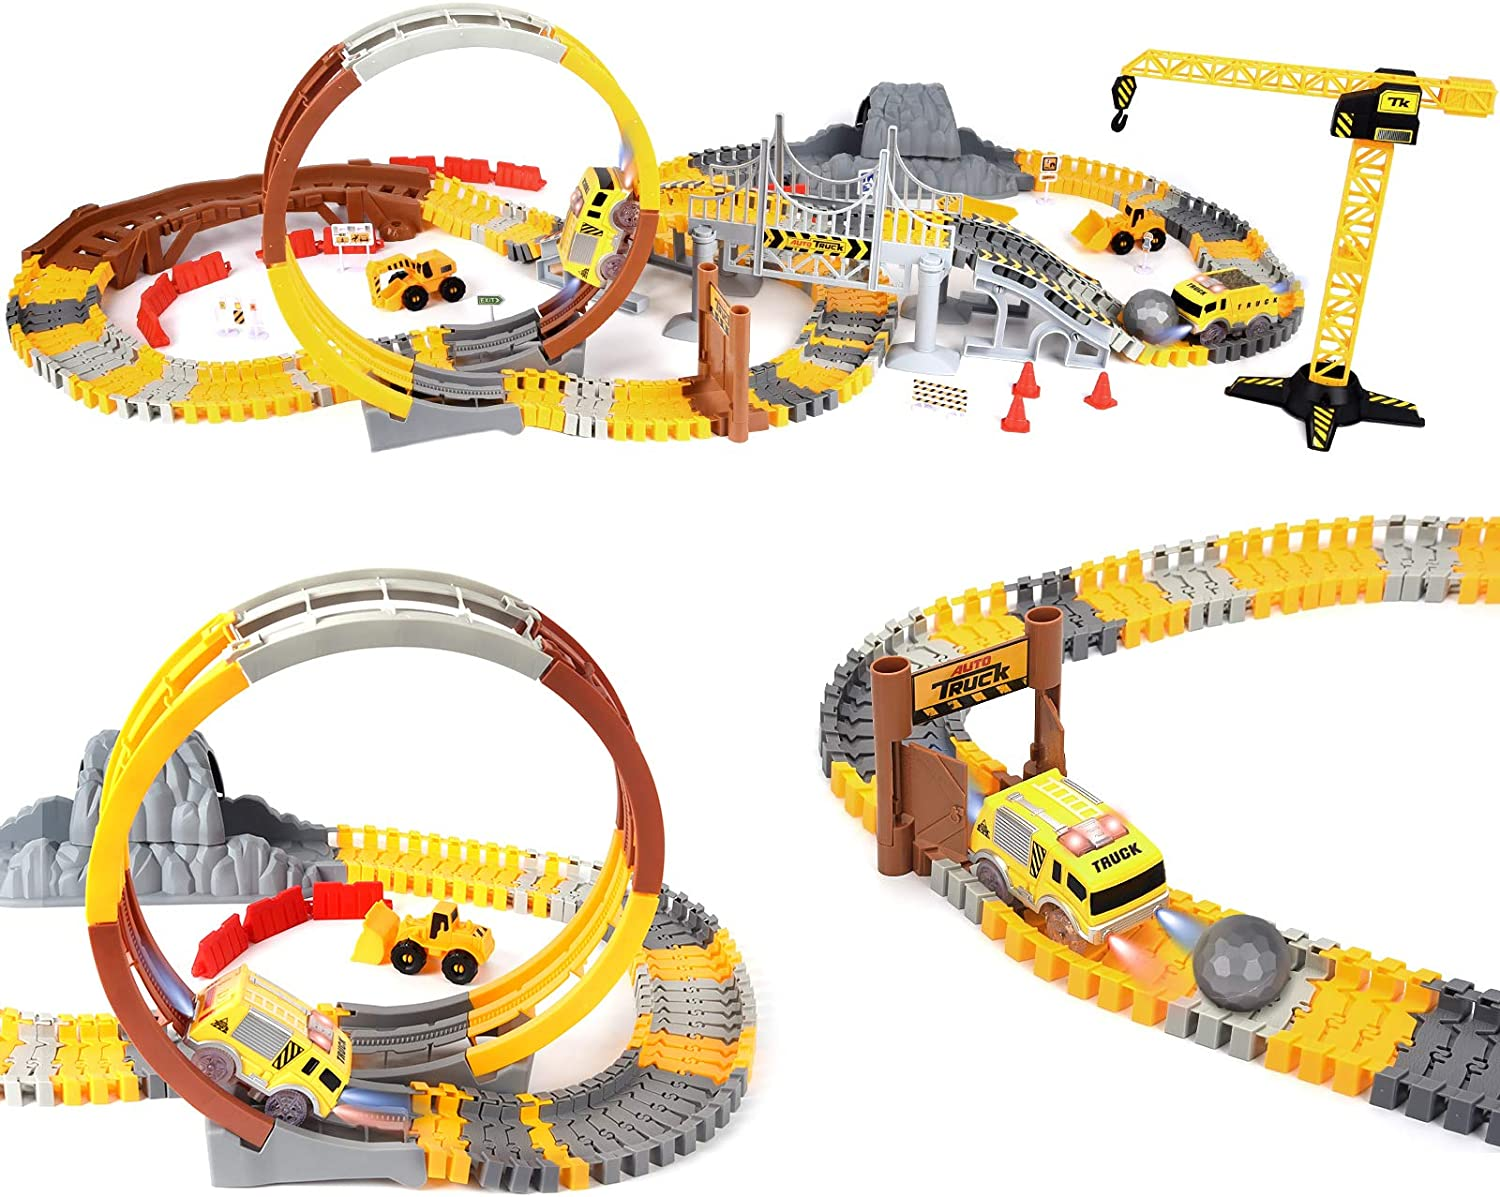 Track Toys for Kids, 227pcs Construction Themed car Race Track Sets, Flexible Trains Tracks with 2 Race Trucks, Construction Trucks as Birthday Gifts for 3 4 5 6 7 Years Old Child Boys and Girls